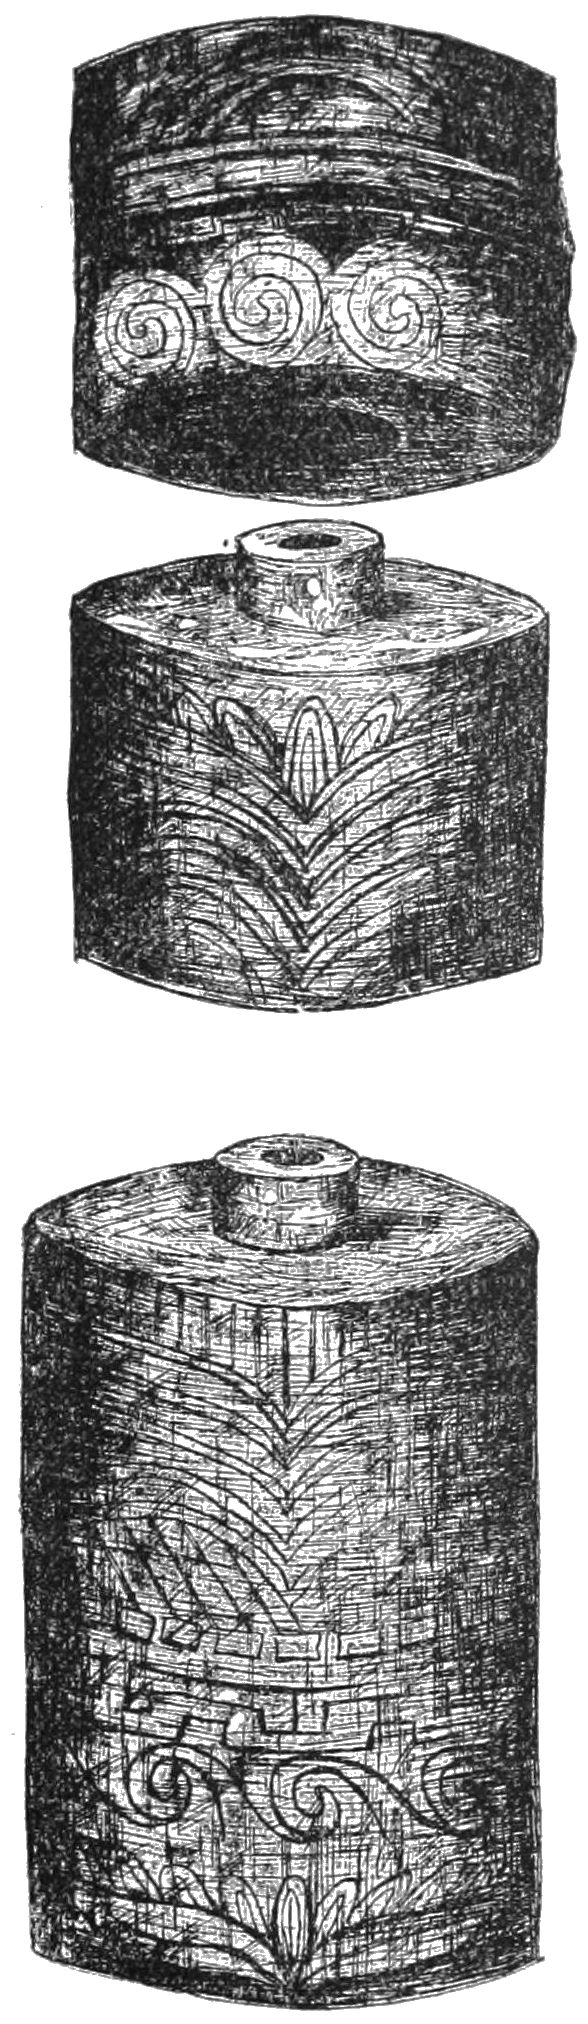 TLM D490 Mortised block at Tula.jpg